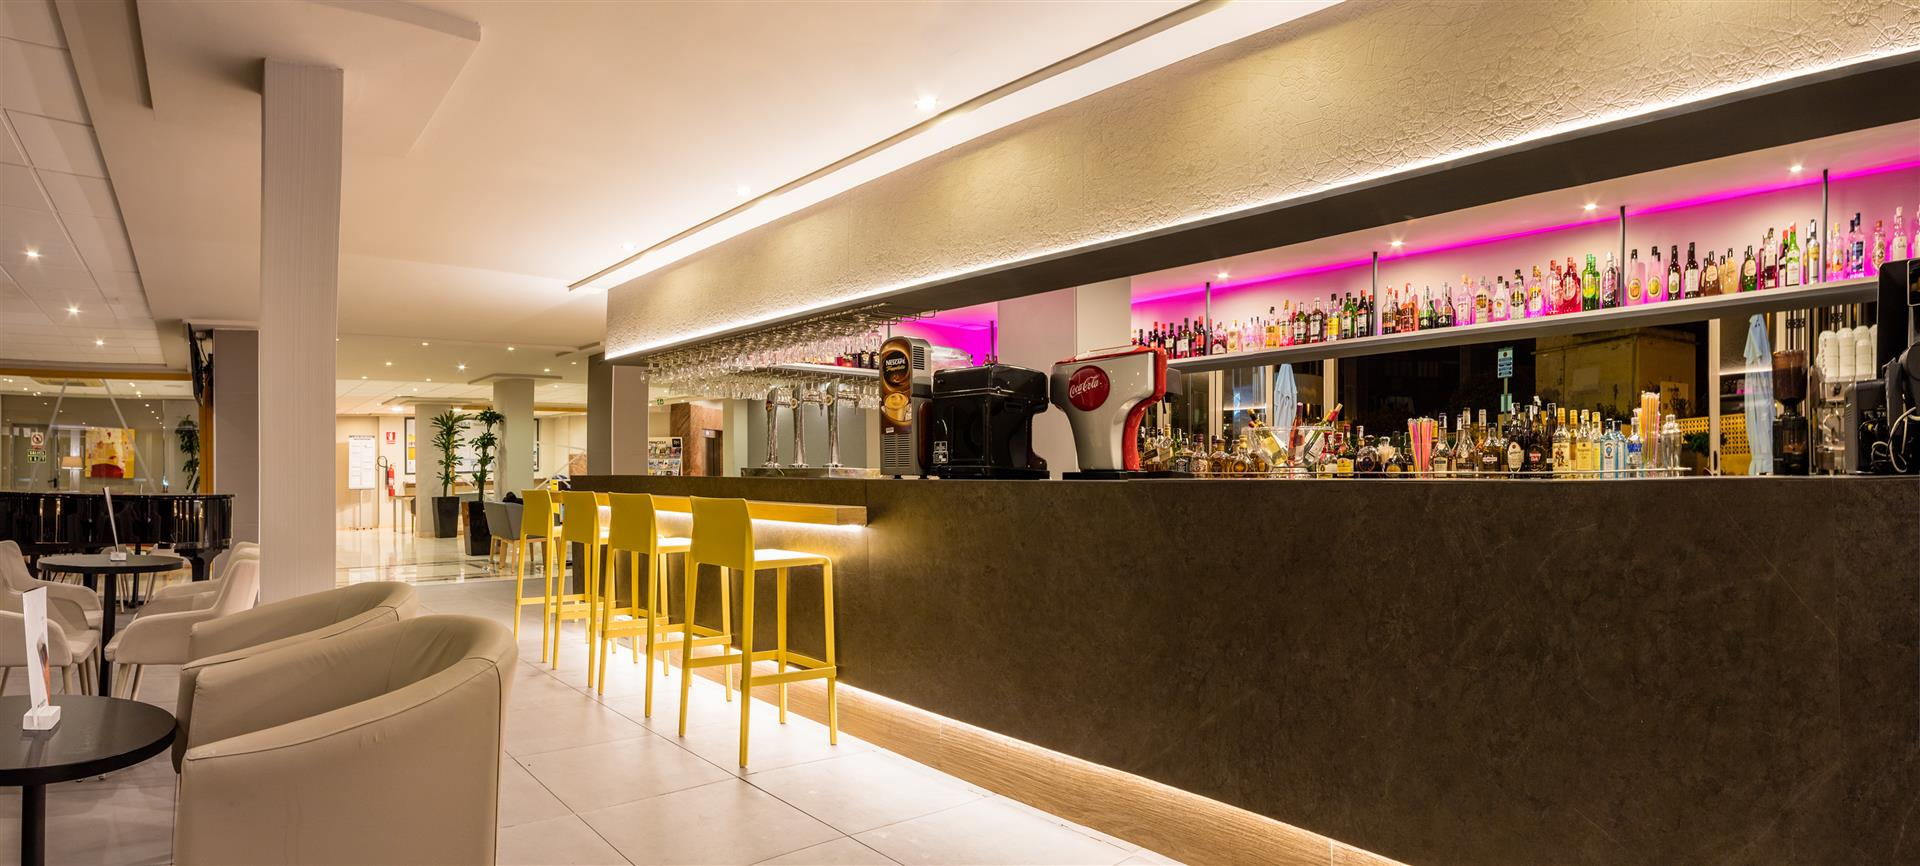 Hotel RH Princesa bar-lounge